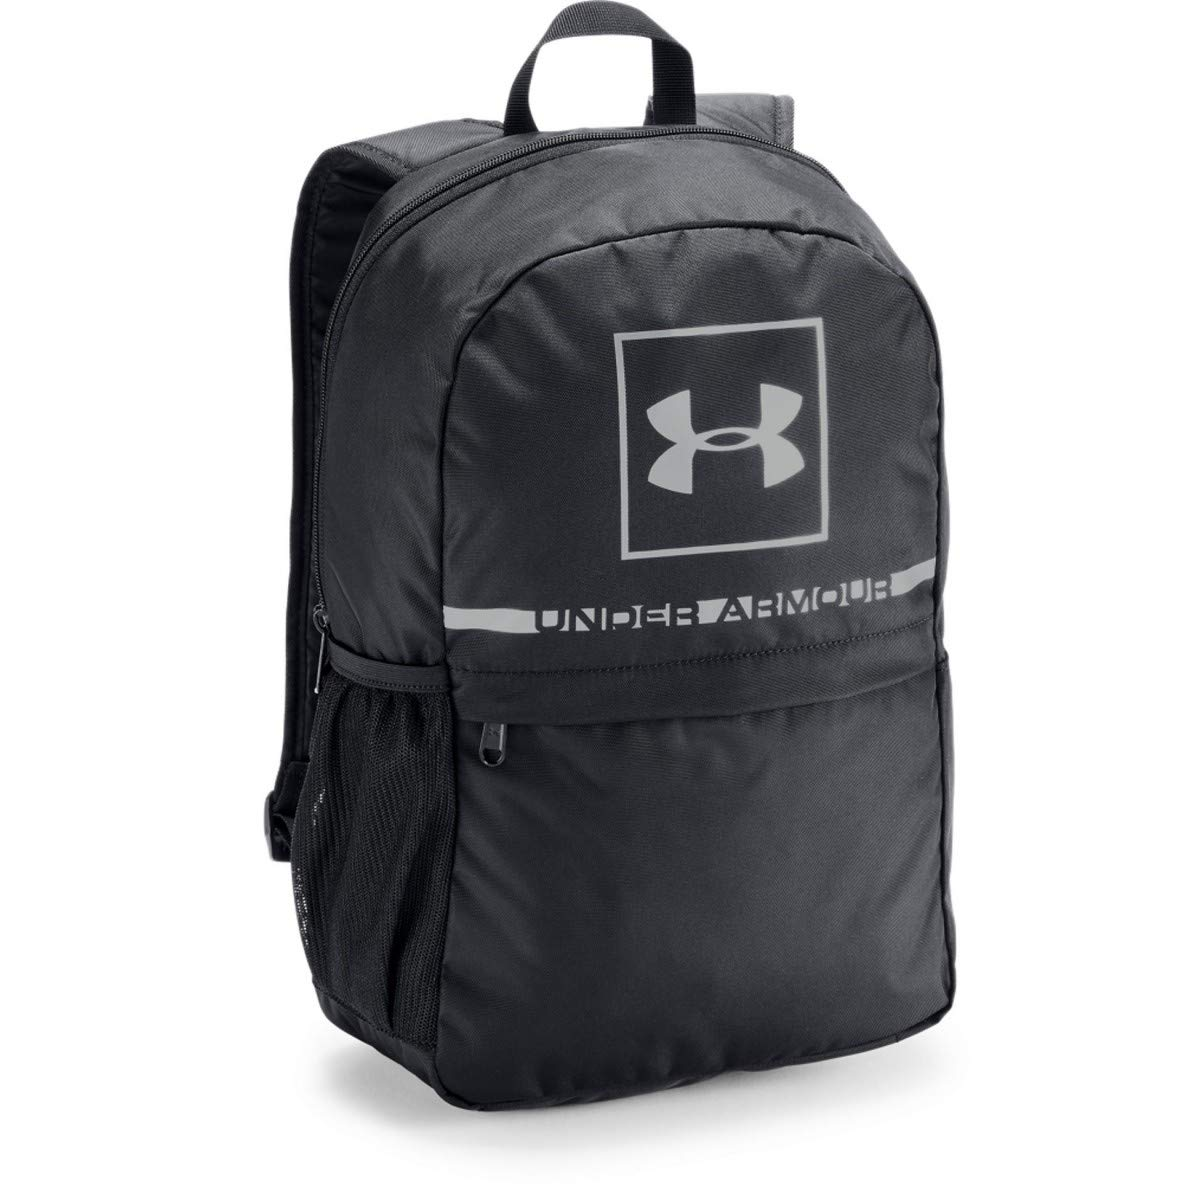 Under Armour Project 5 Bpバックパック